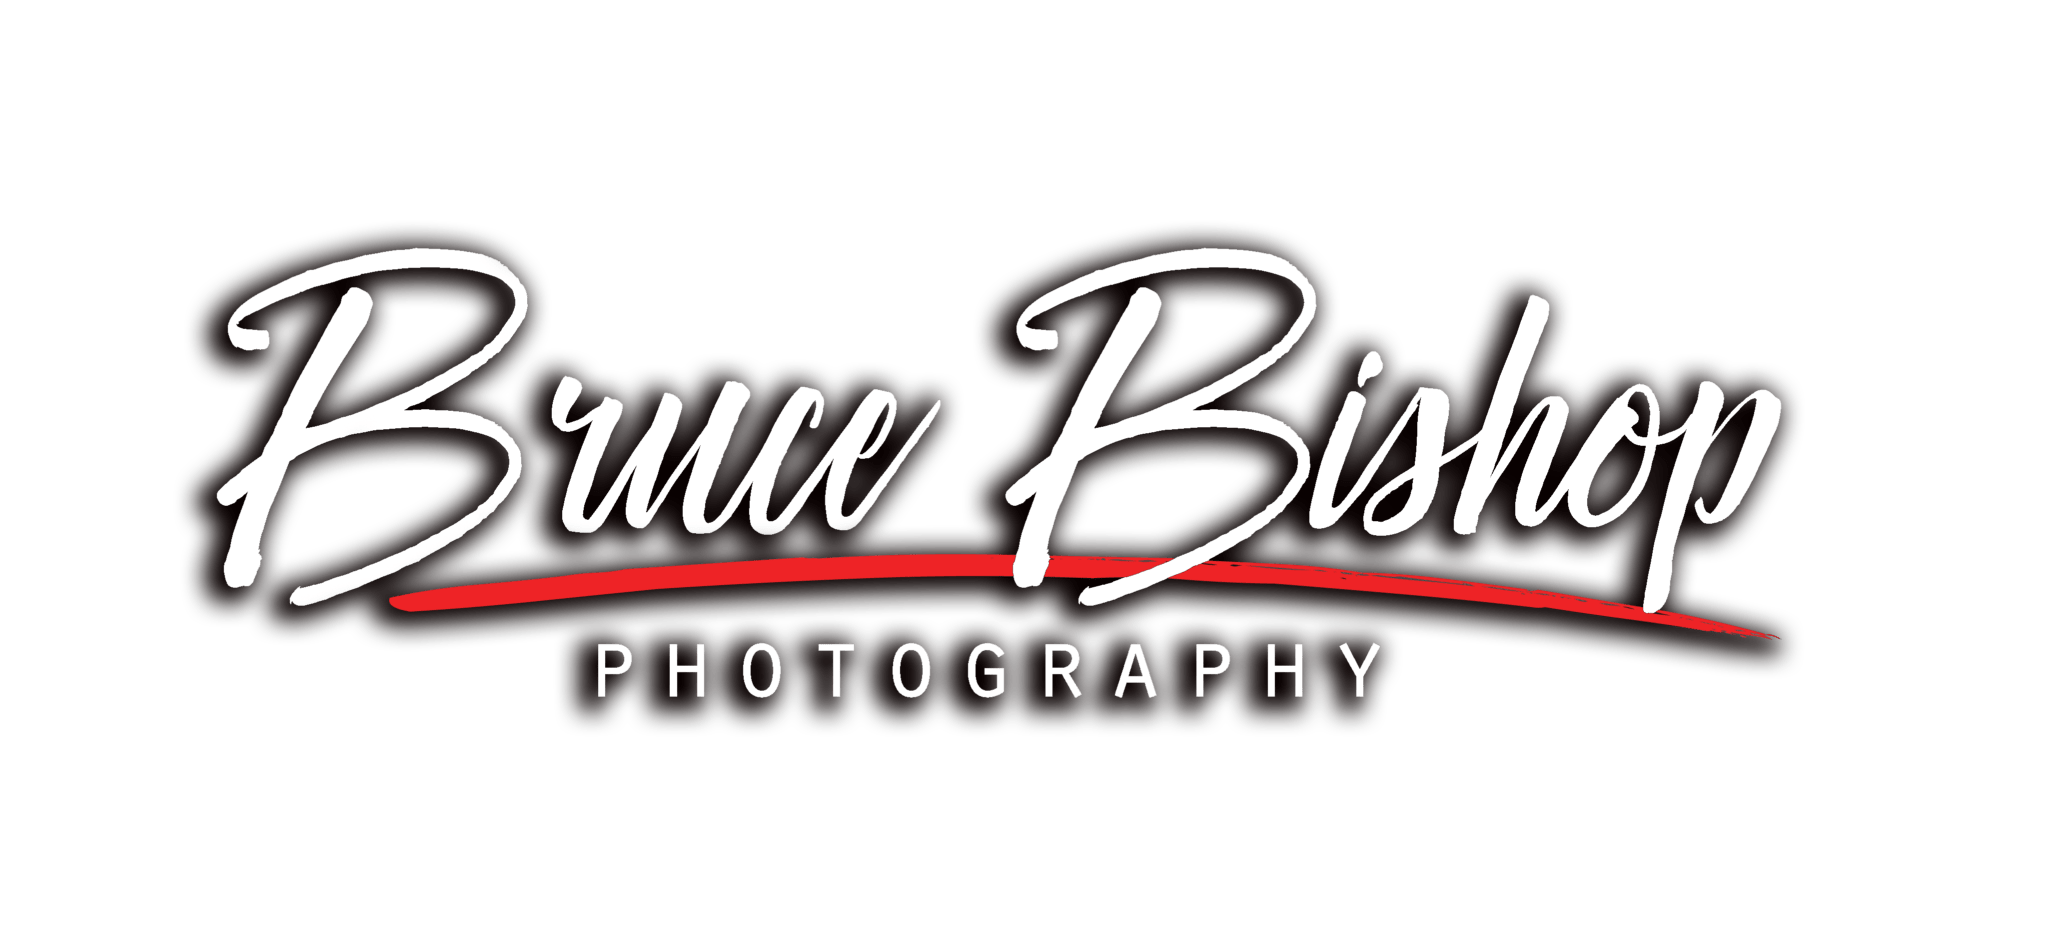 Bruce Bishop Photography